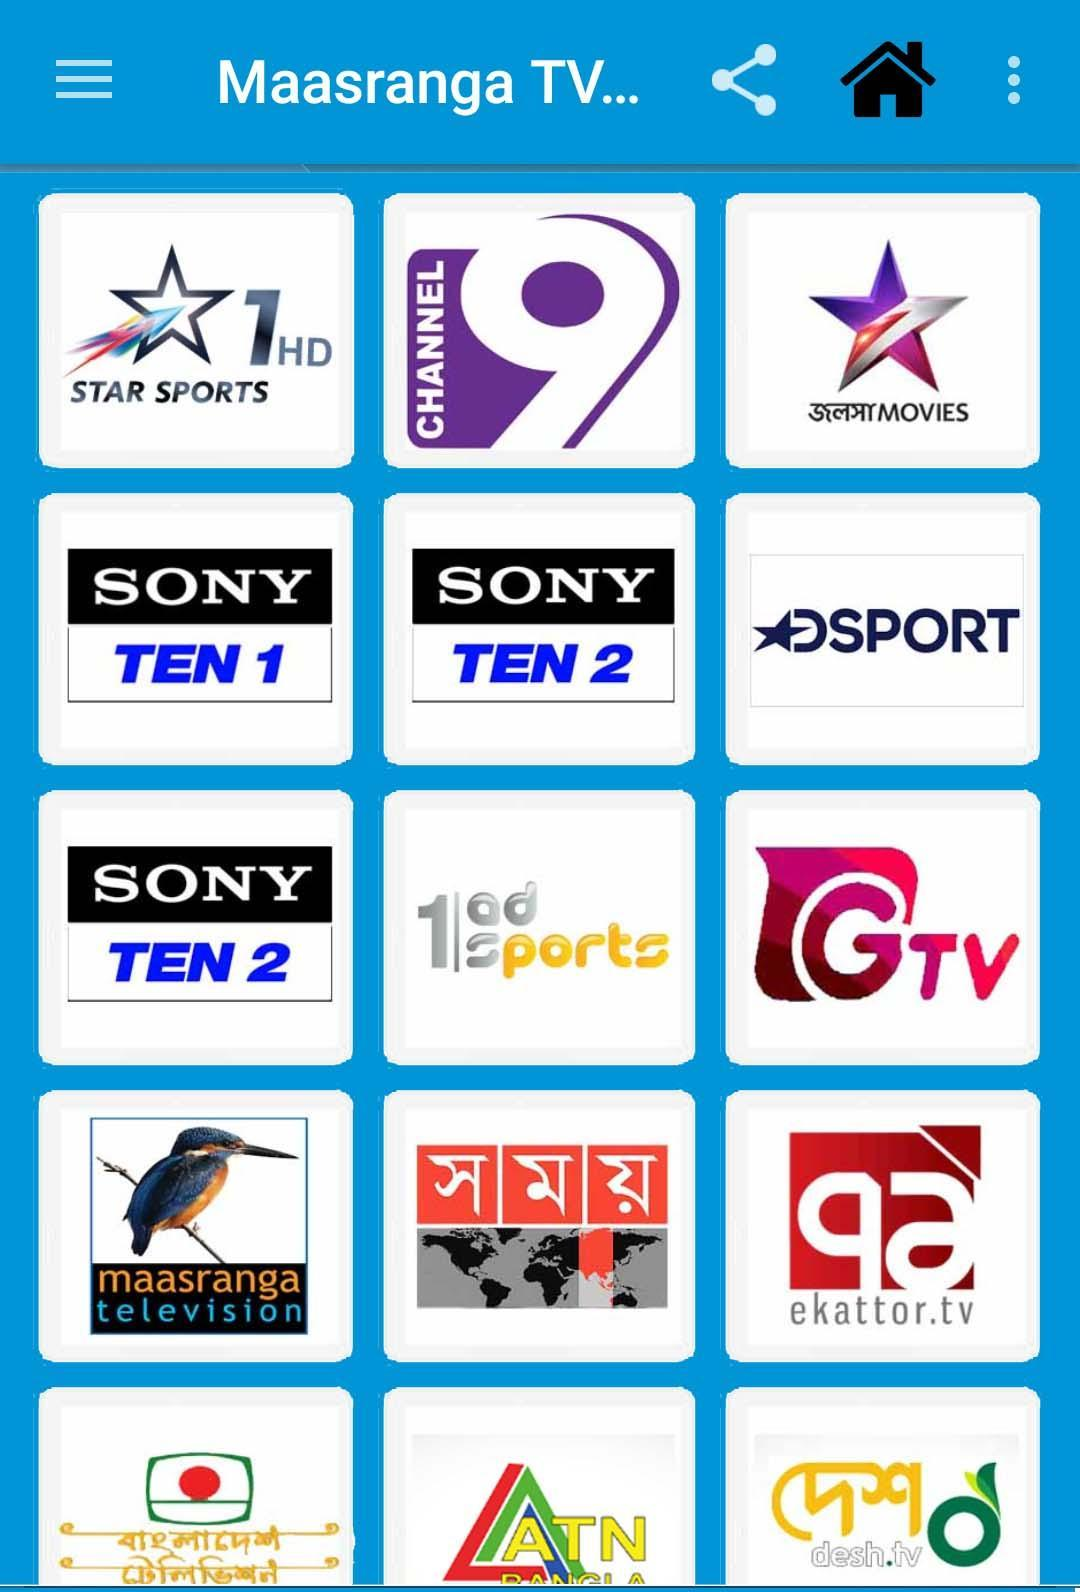 maasranga tv live for Android - APK Download